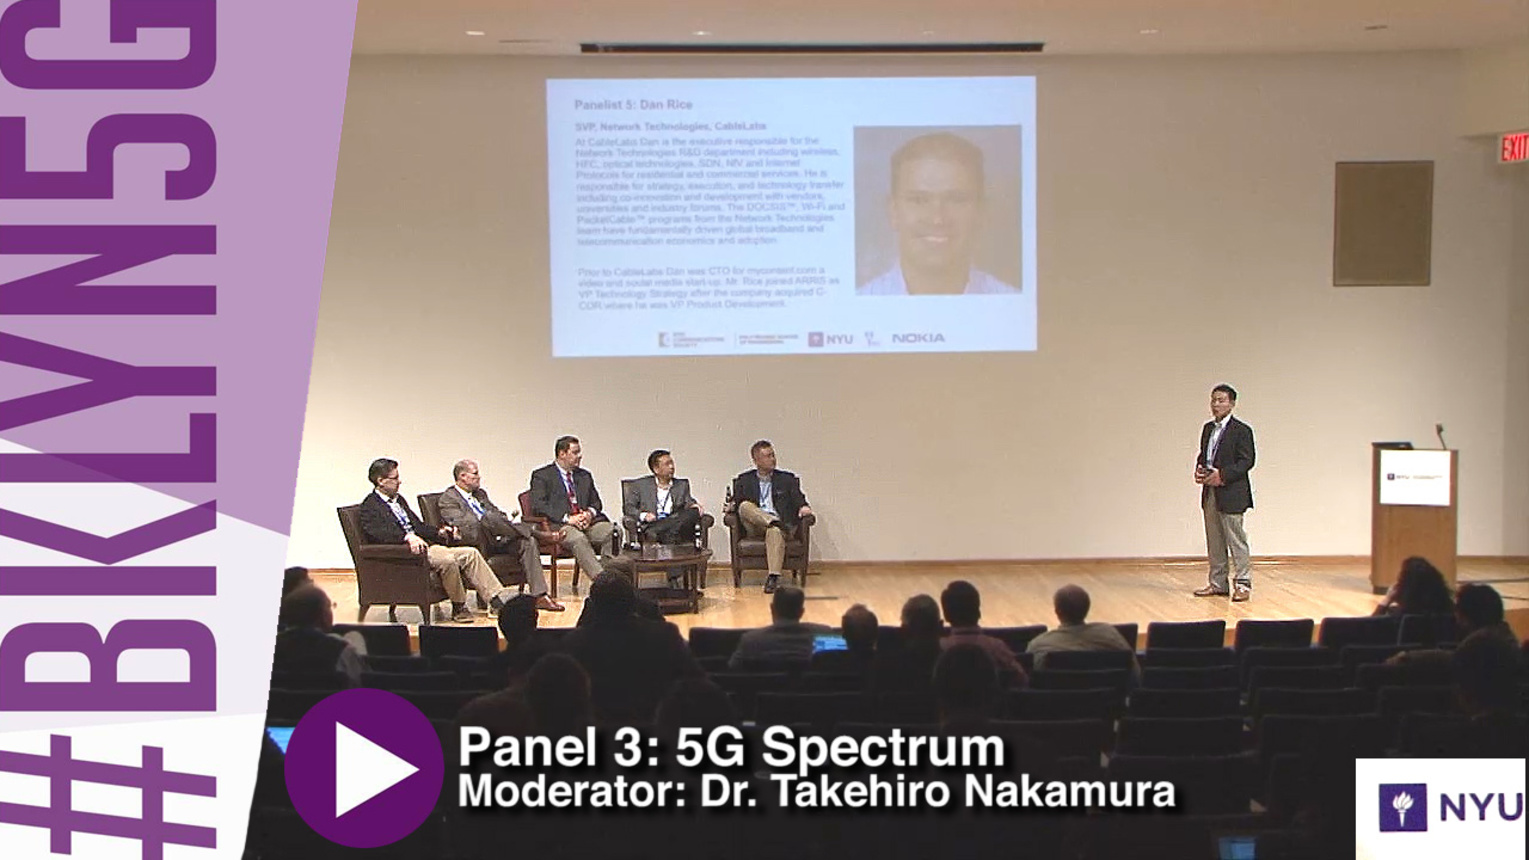 Panel 3: Mobile Broadband in mmW bands - FCC Perspective - Brooklyn 5G - 2015